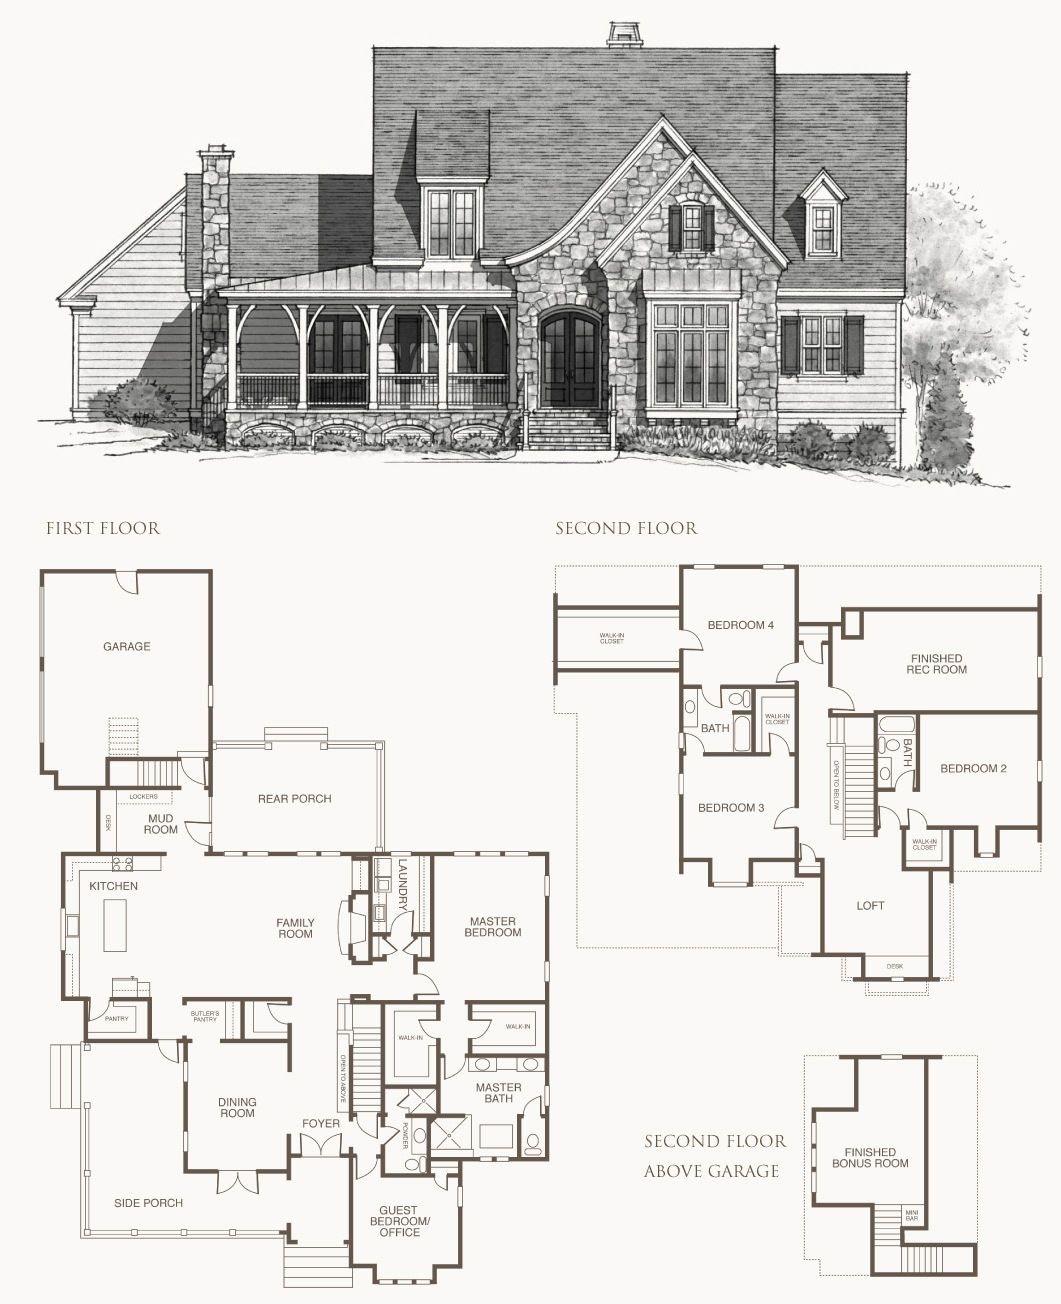 Southern Living Showcase Home Craftsman House Plans Southern Living House Plans Cottage Floor Plans